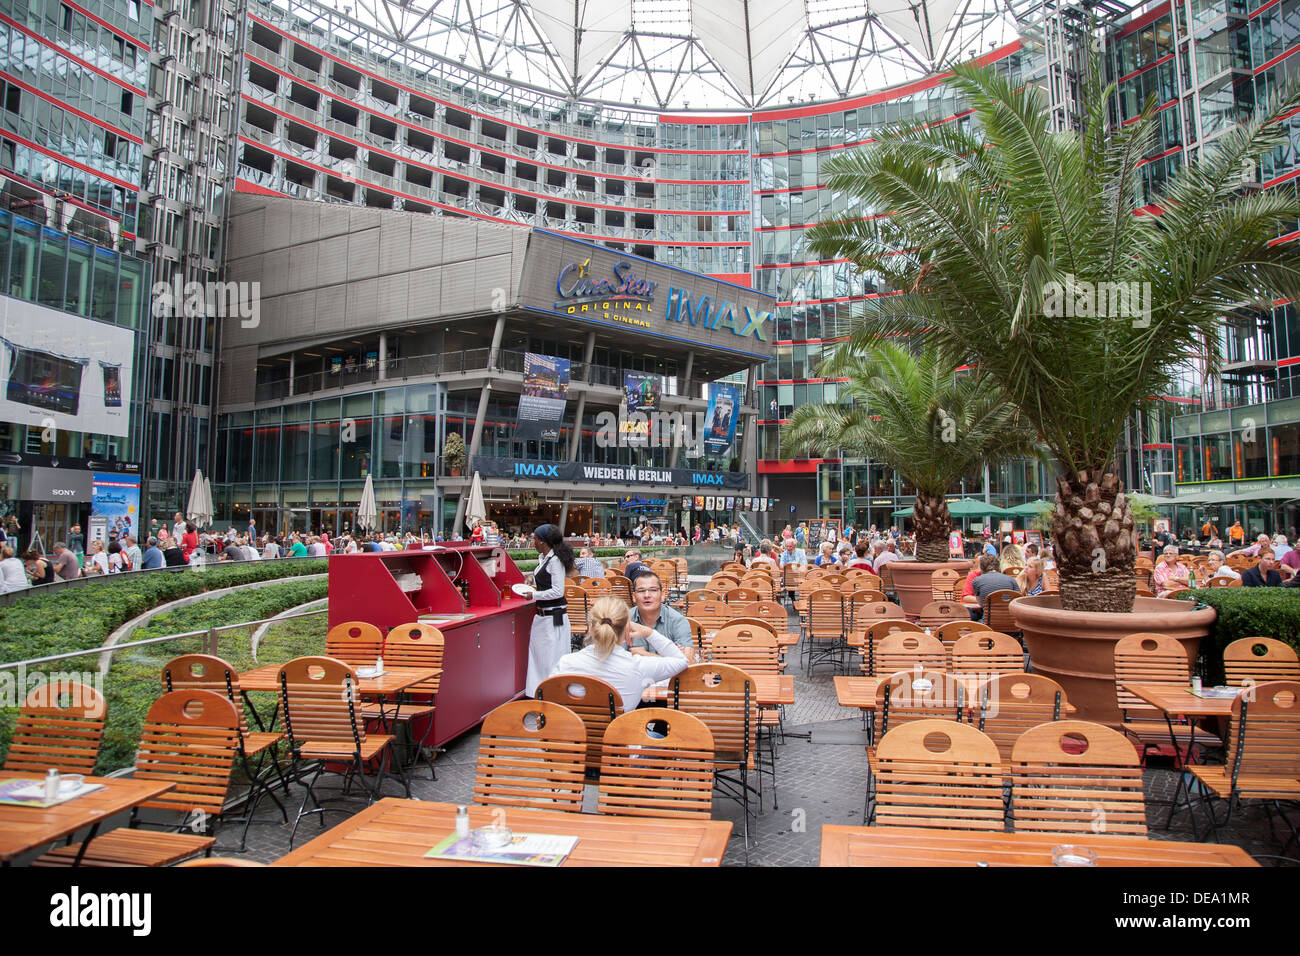 imax cinema sony center potsdamer platz square berlin germany stock photo royalty free. Black Bedroom Furniture Sets. Home Design Ideas